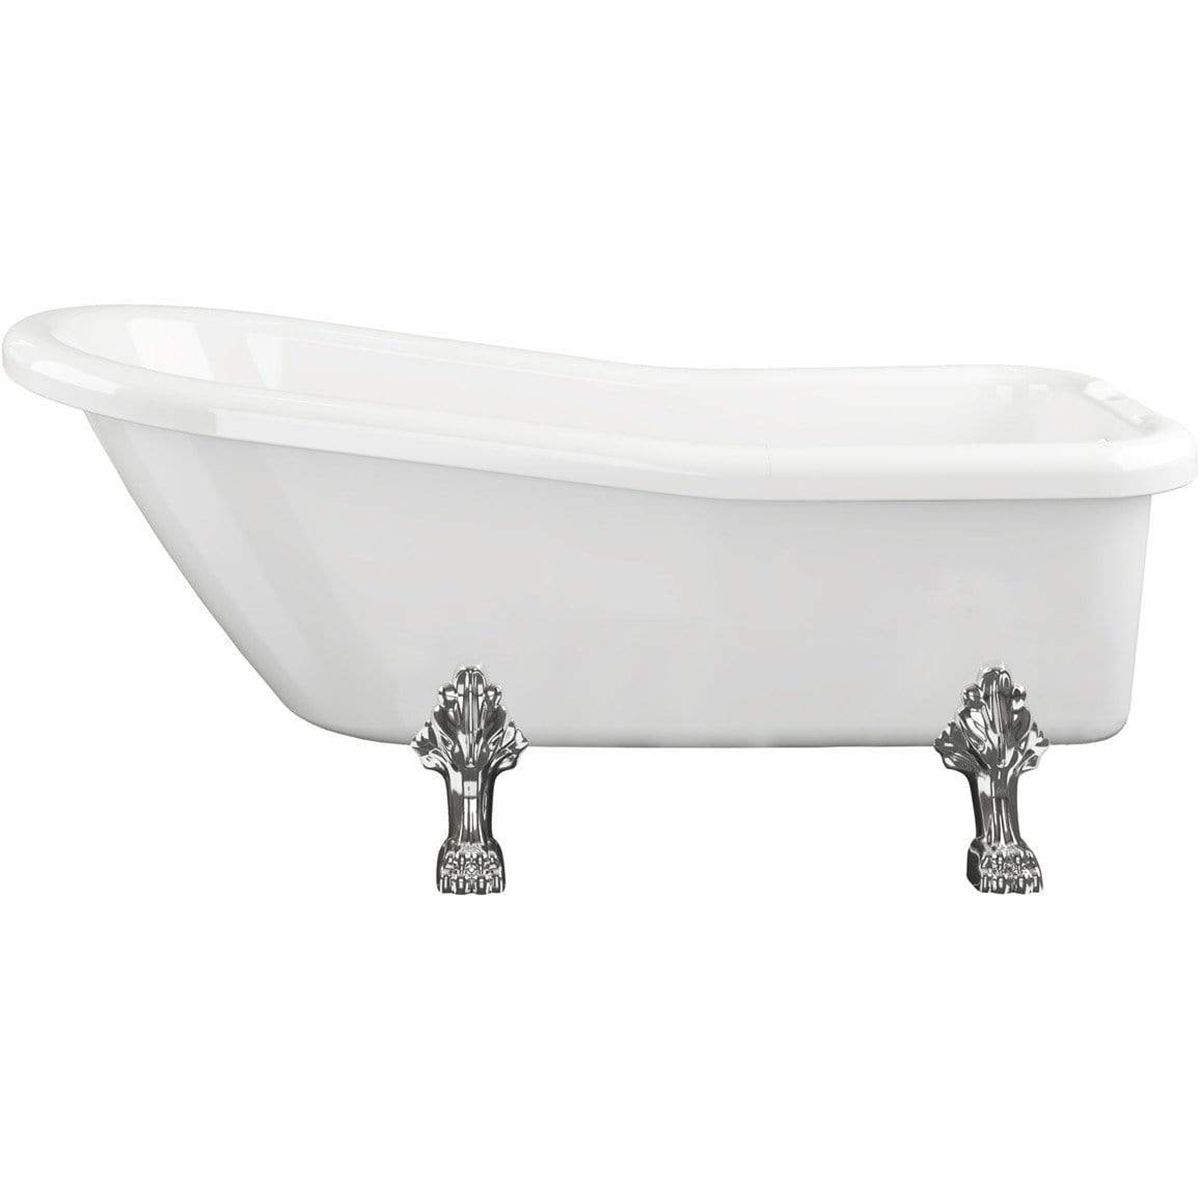 Bathrooms To Love Bayswater Freestanding Bath with Feet 1710mm x 710mm 1